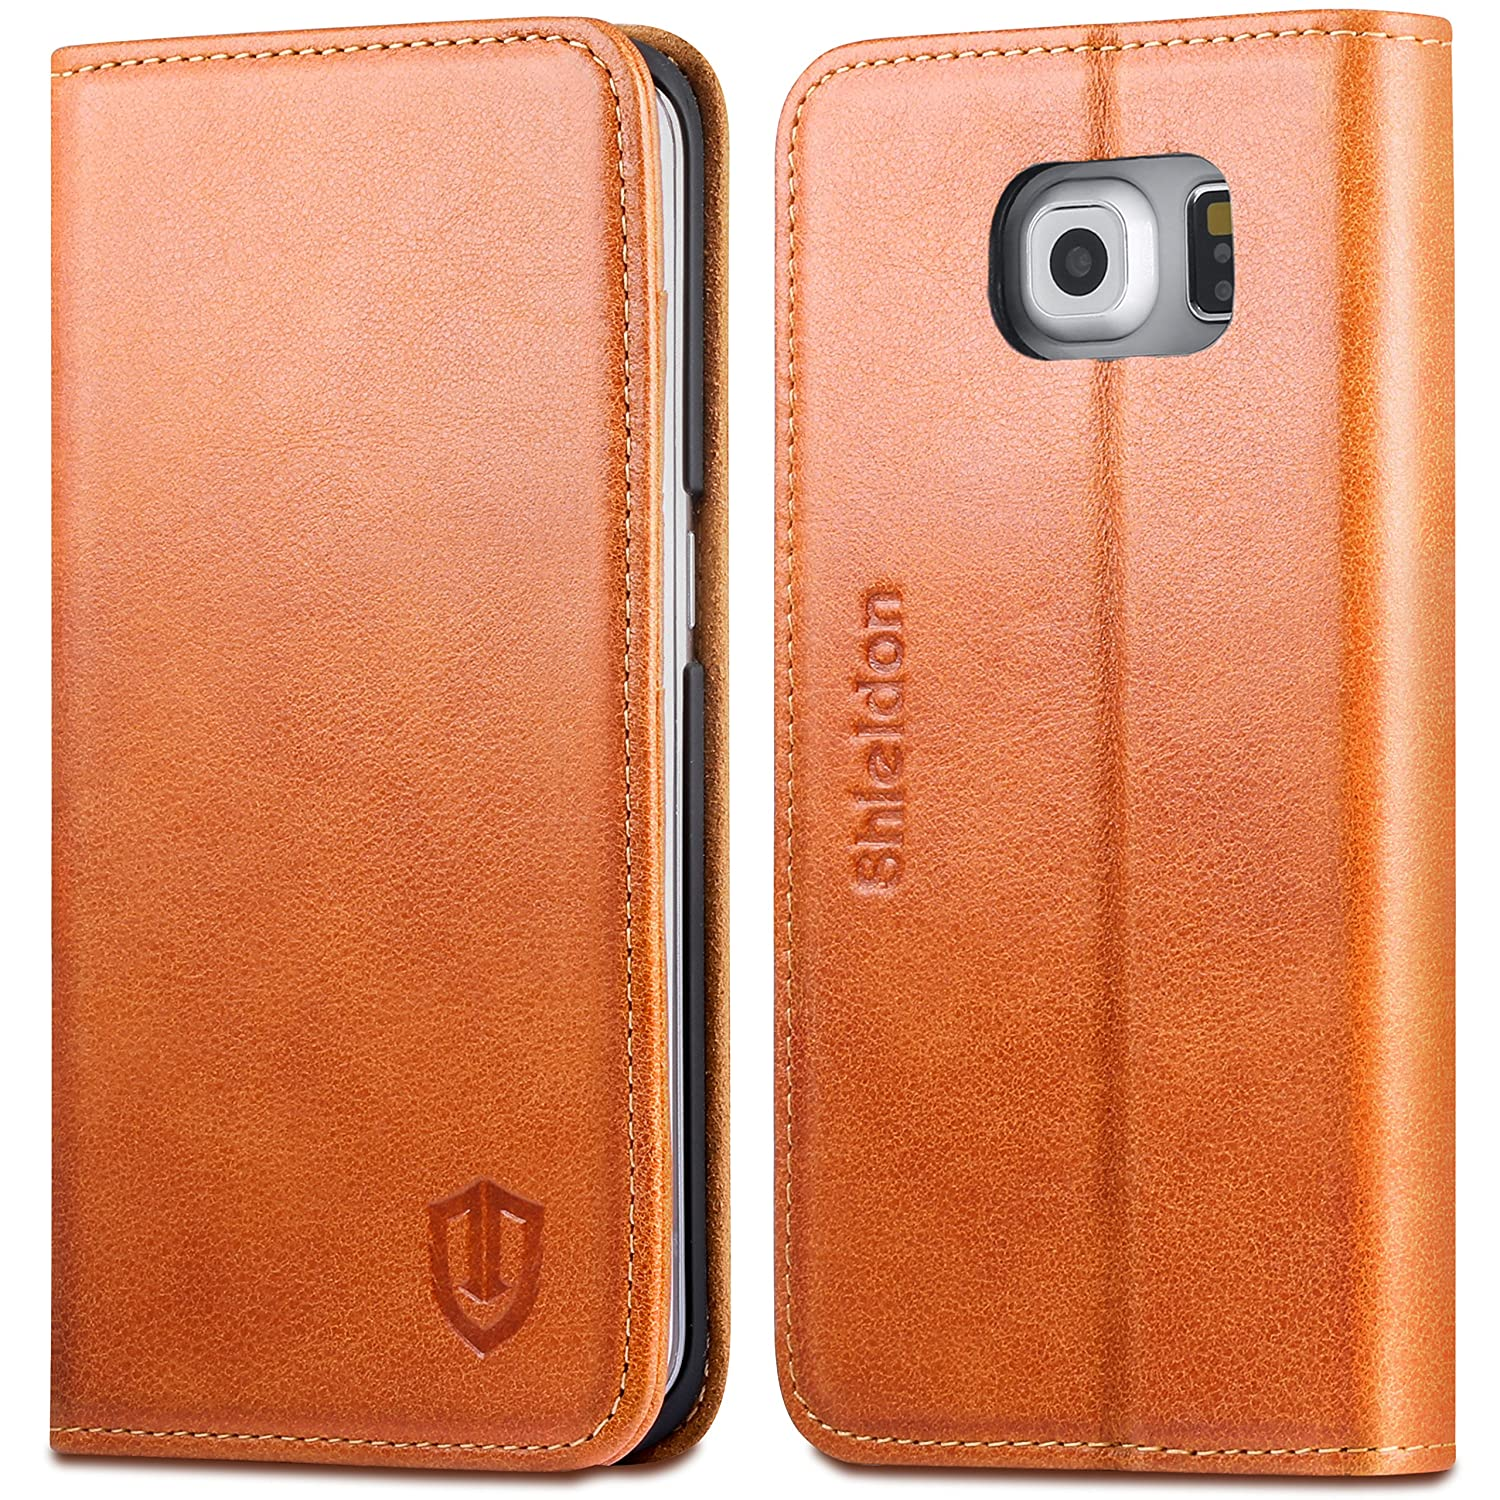 samsung s6 phone case magnetic